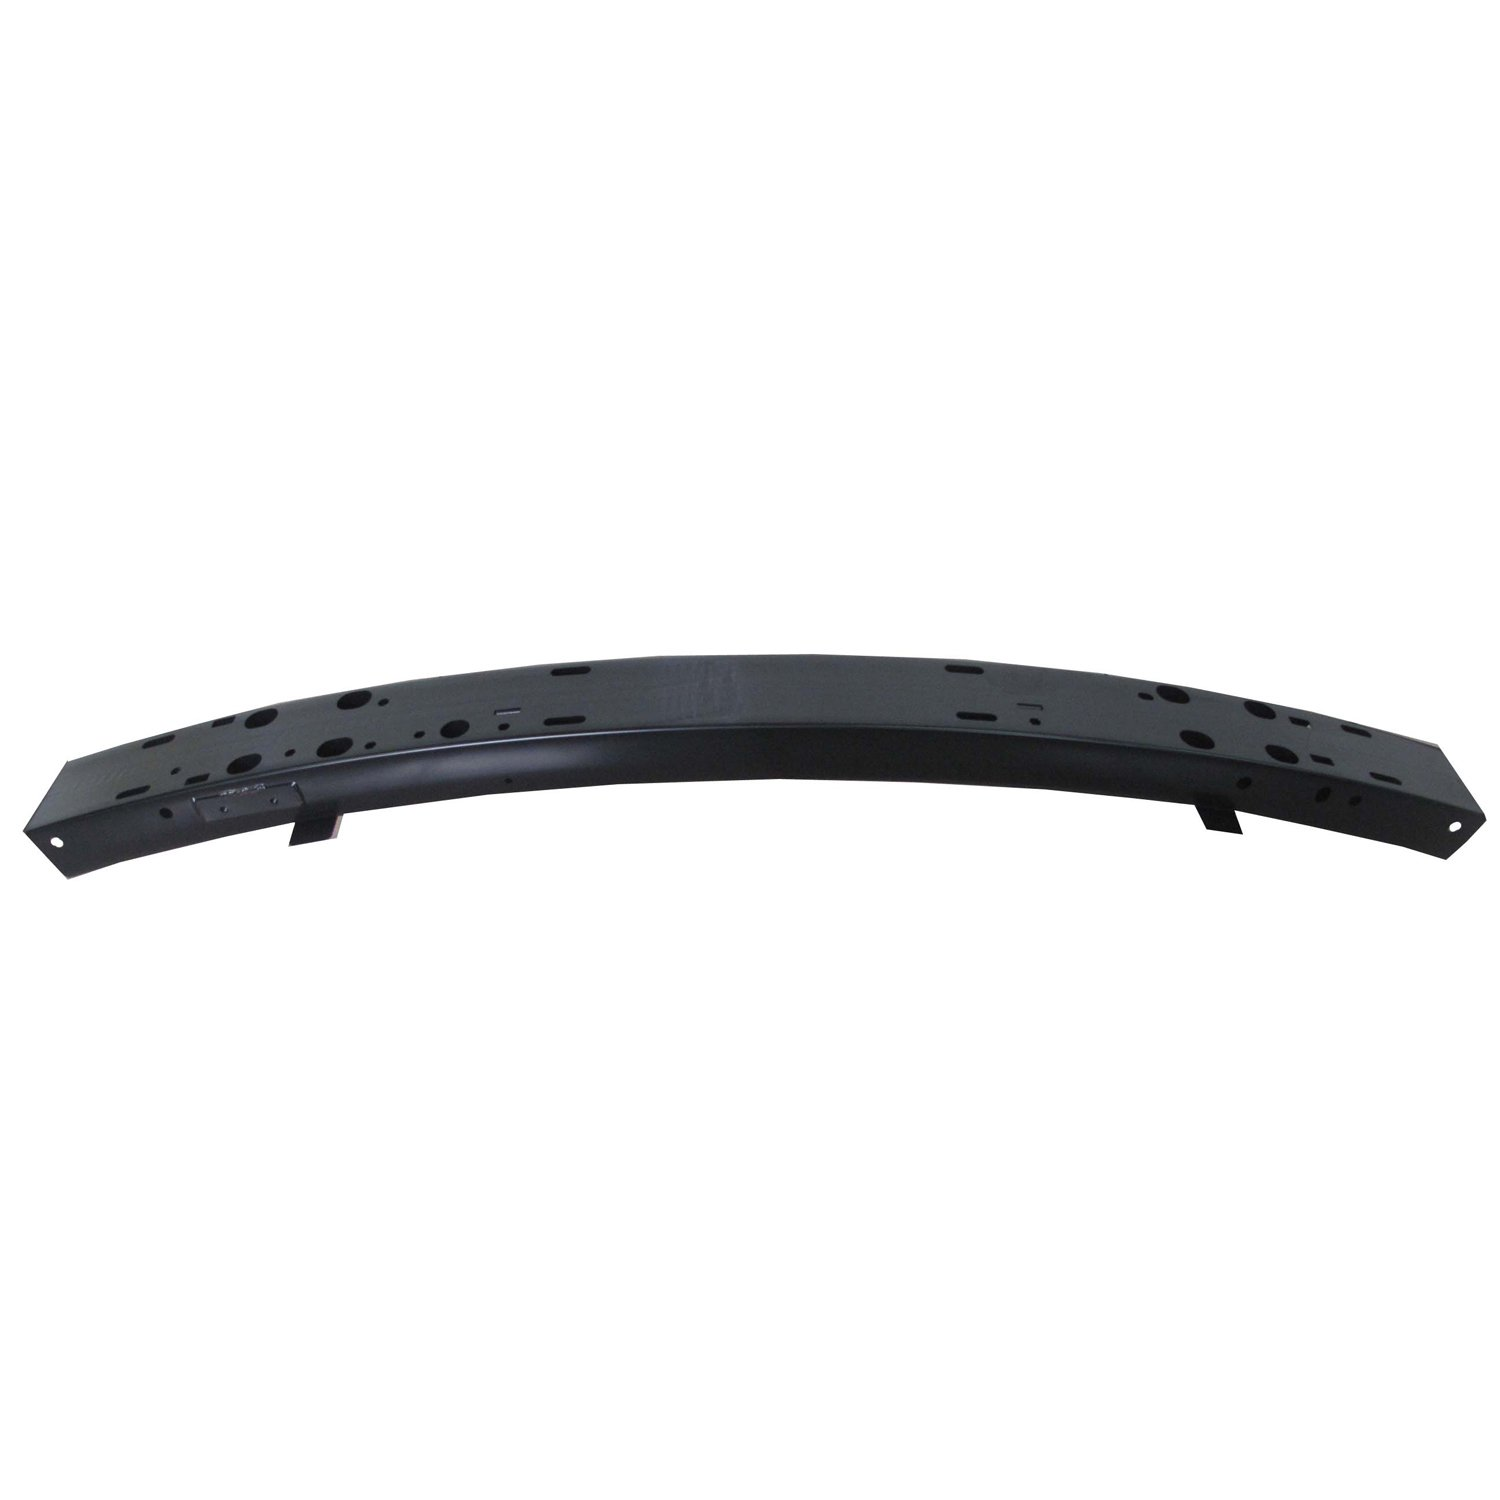 Cpp Capa Front Bumper Reinforcement For Chrysler 300 Timing Belt 2007 Touring Dodge Charger Automotive